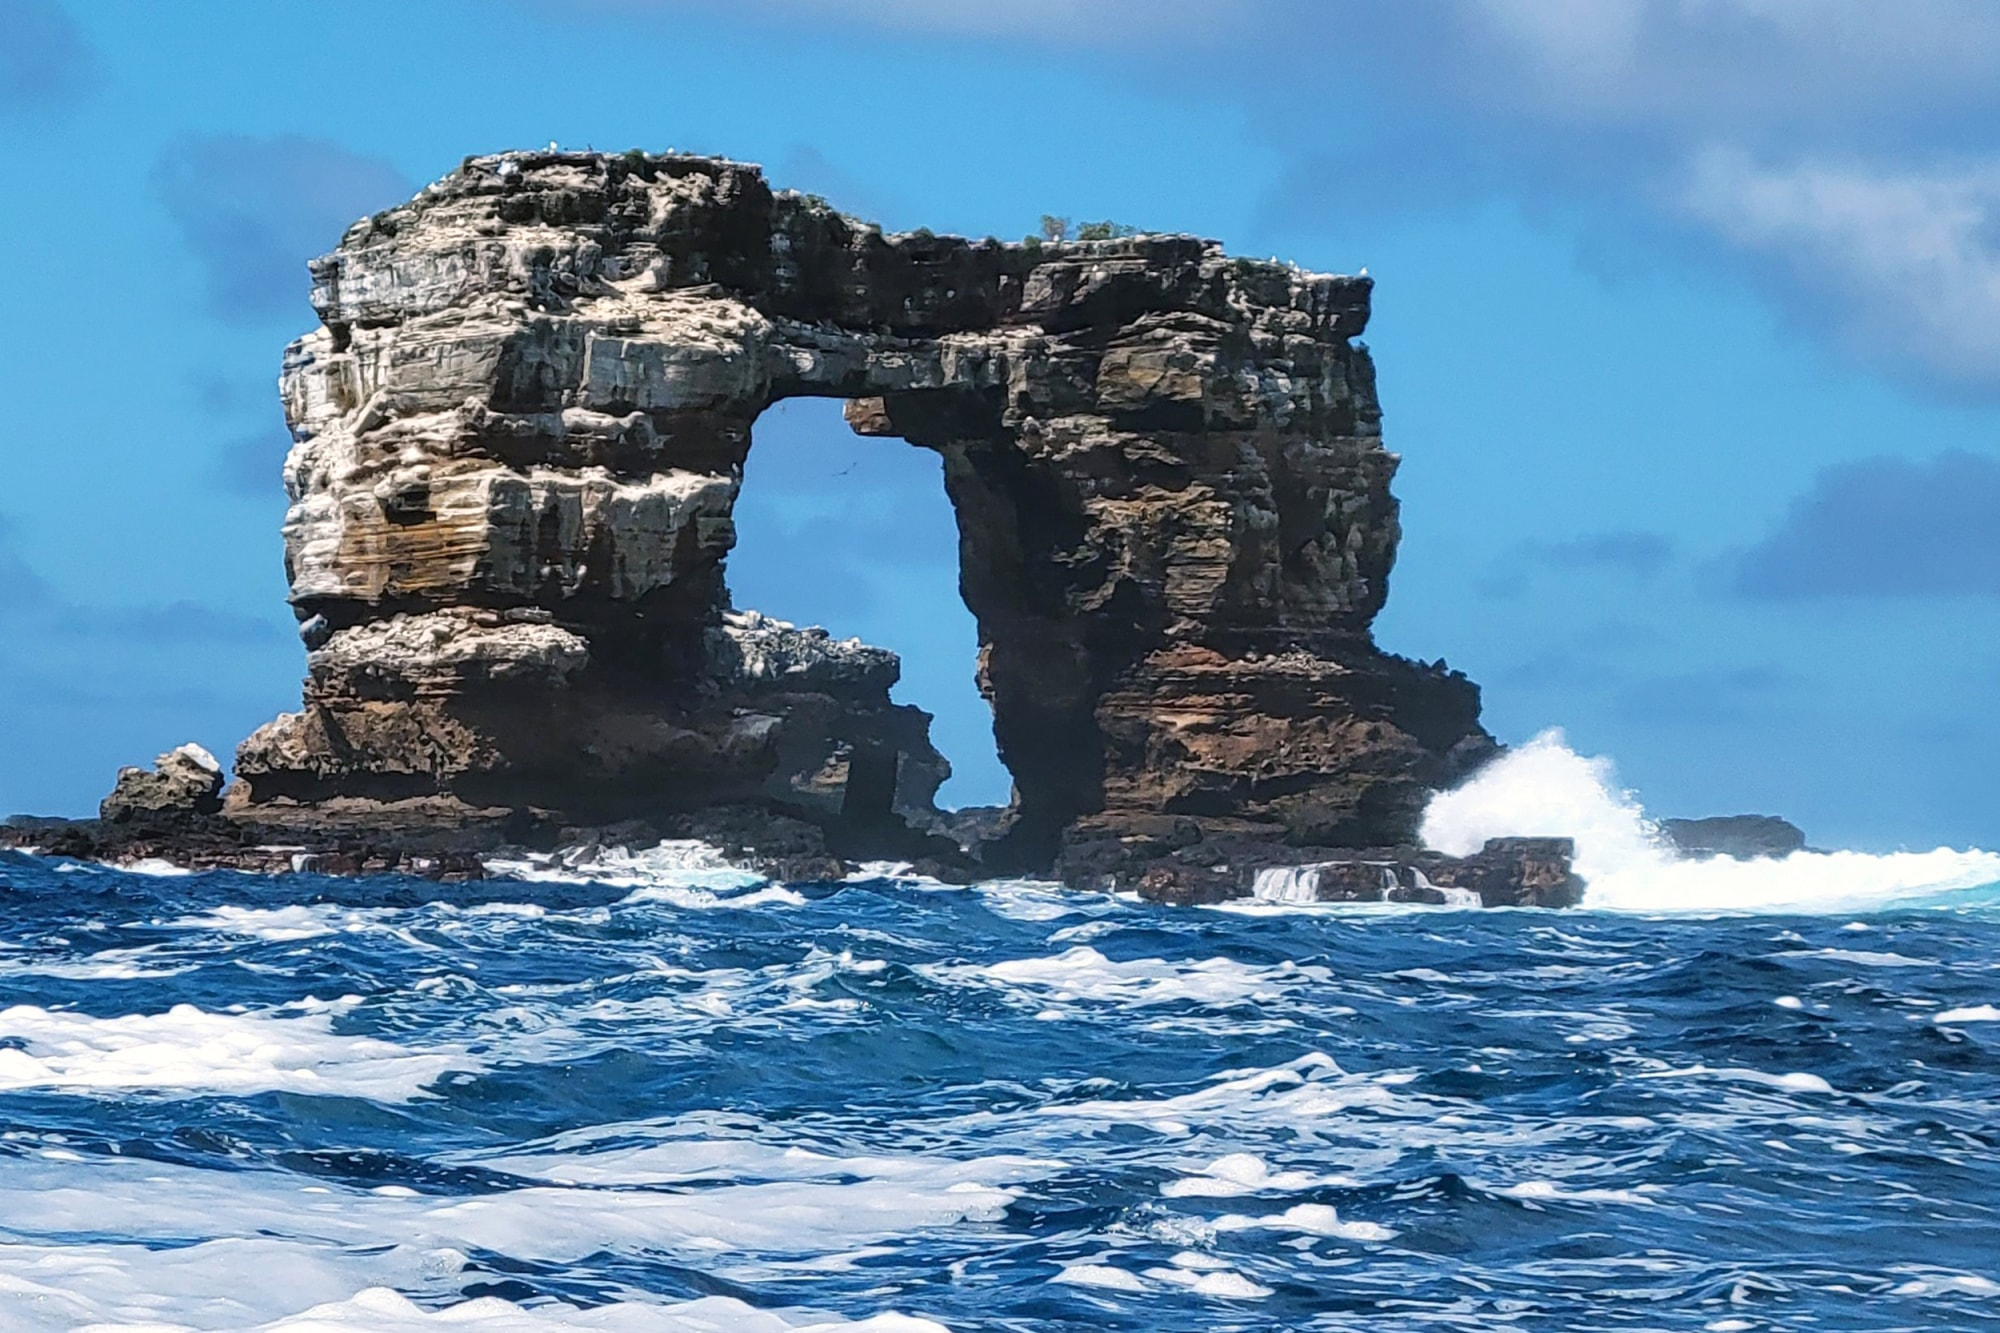 Famed Darwin's Arch in Galapagos takes new shape